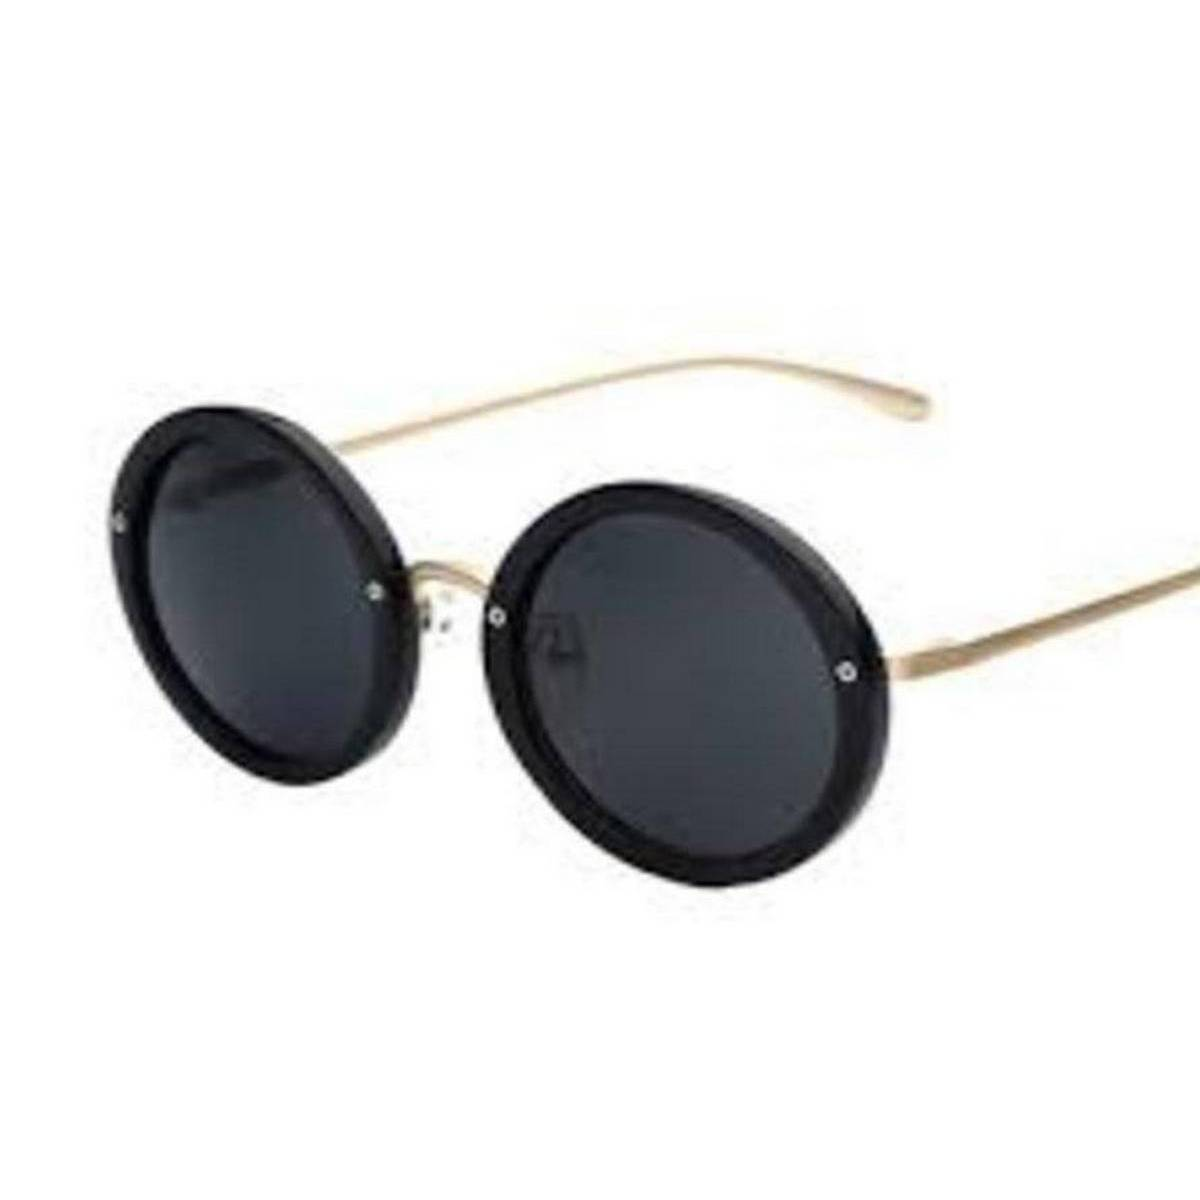 stylish Sunglasses for Men and Women, latest fashion Style sun glasses with 100% UV400 Protection glass Classic trendy metal Frame black Lens